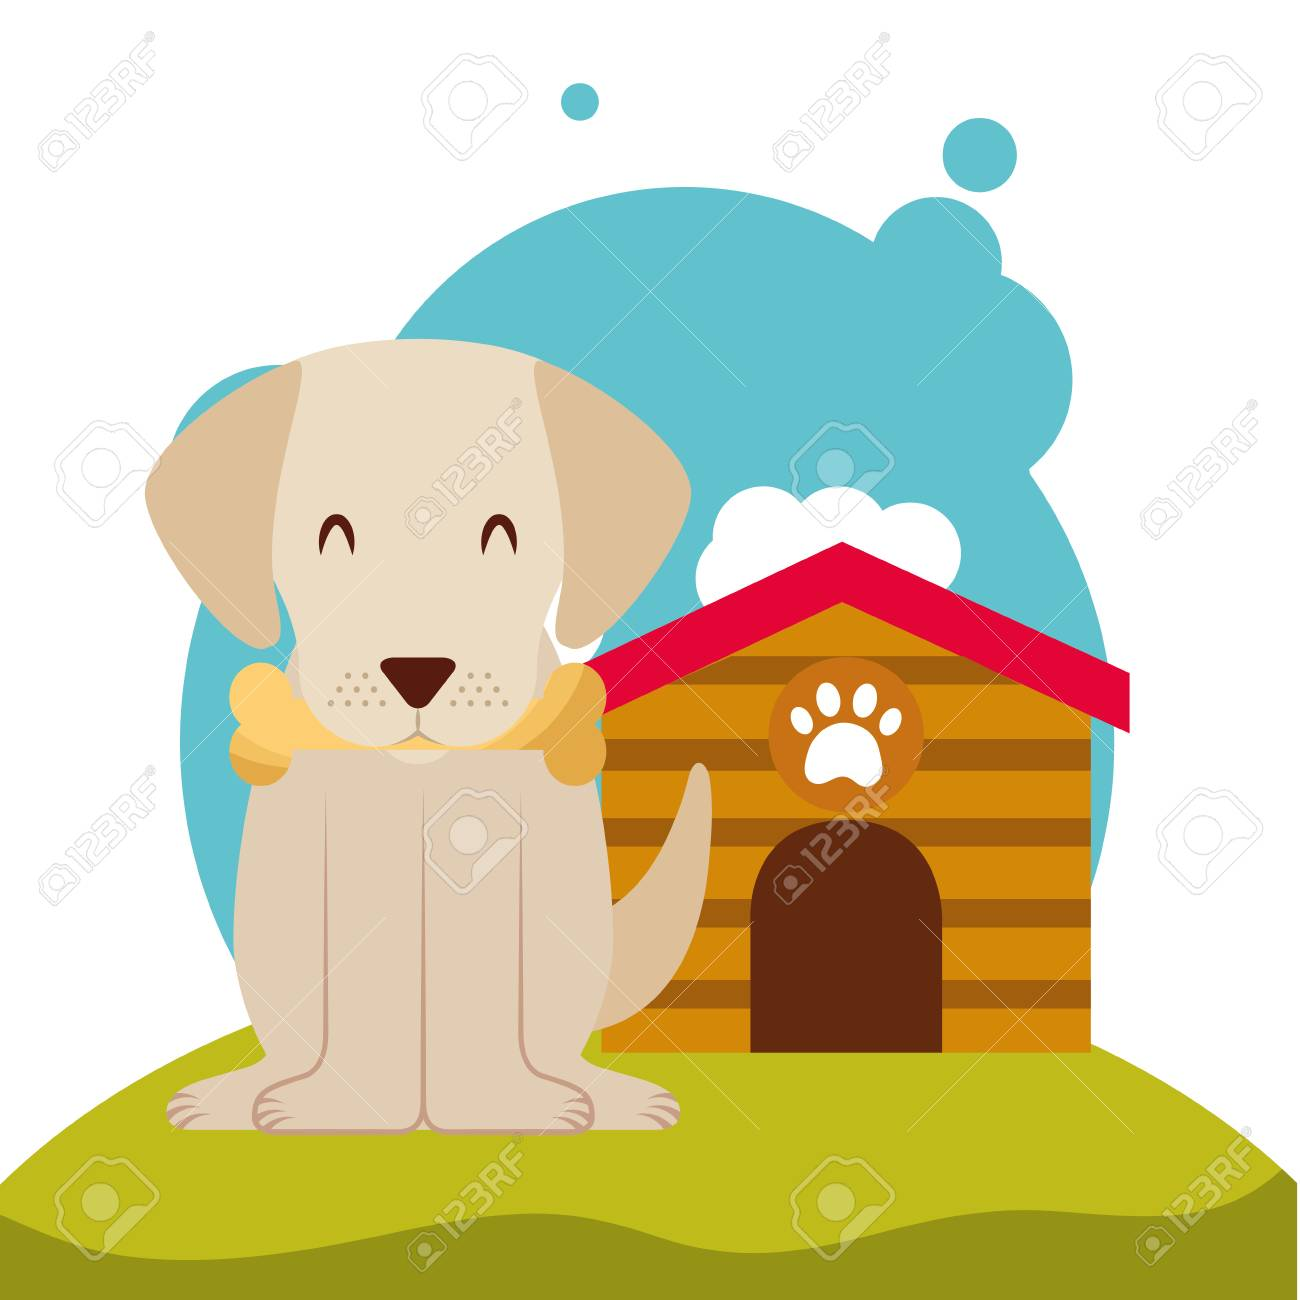 Cute Puppy Dog Bone In Mouth And Dog House In The Meadow Vector